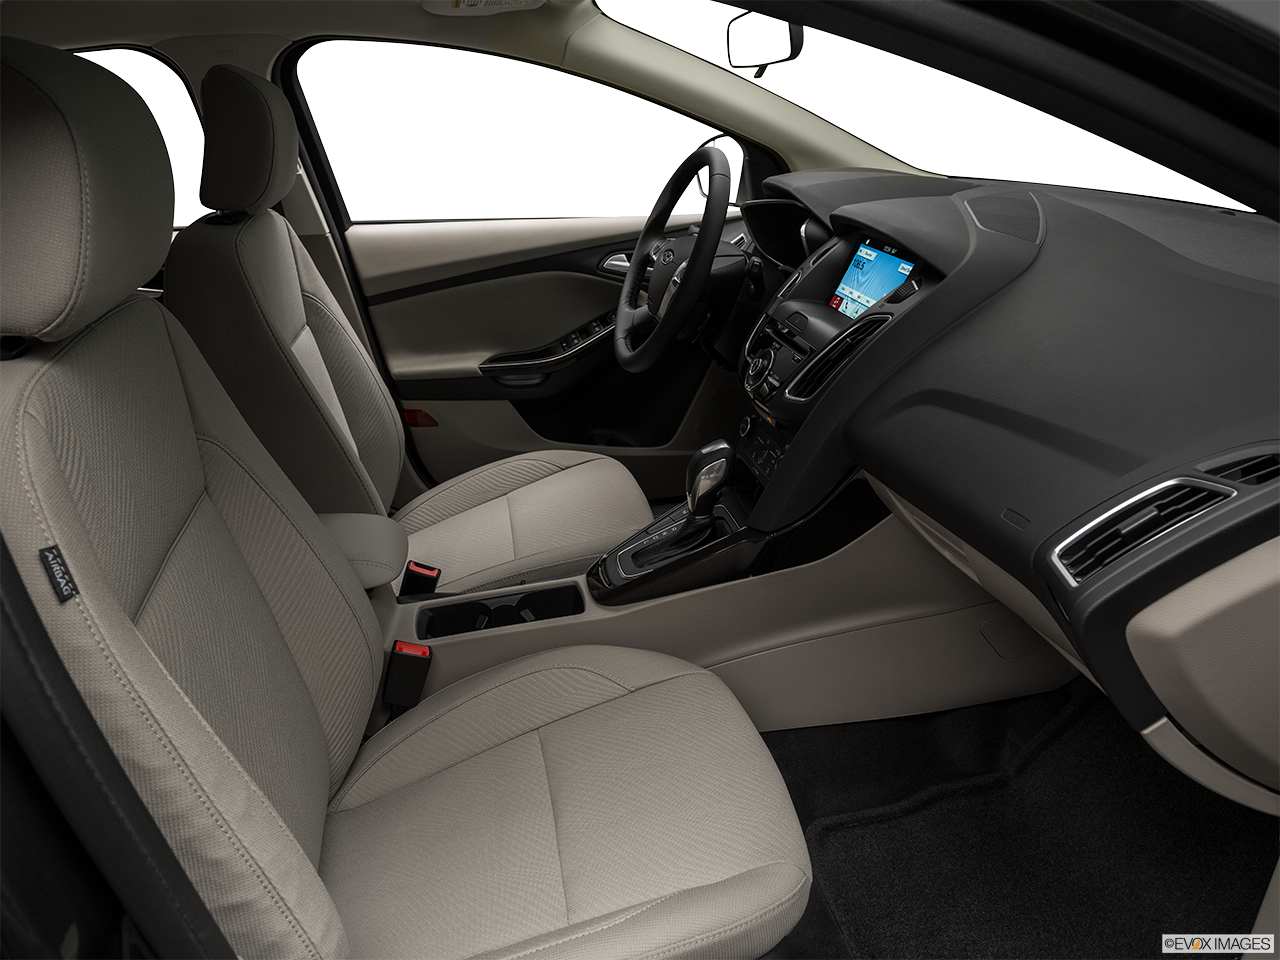 Interior view of the Ford Focus Electric